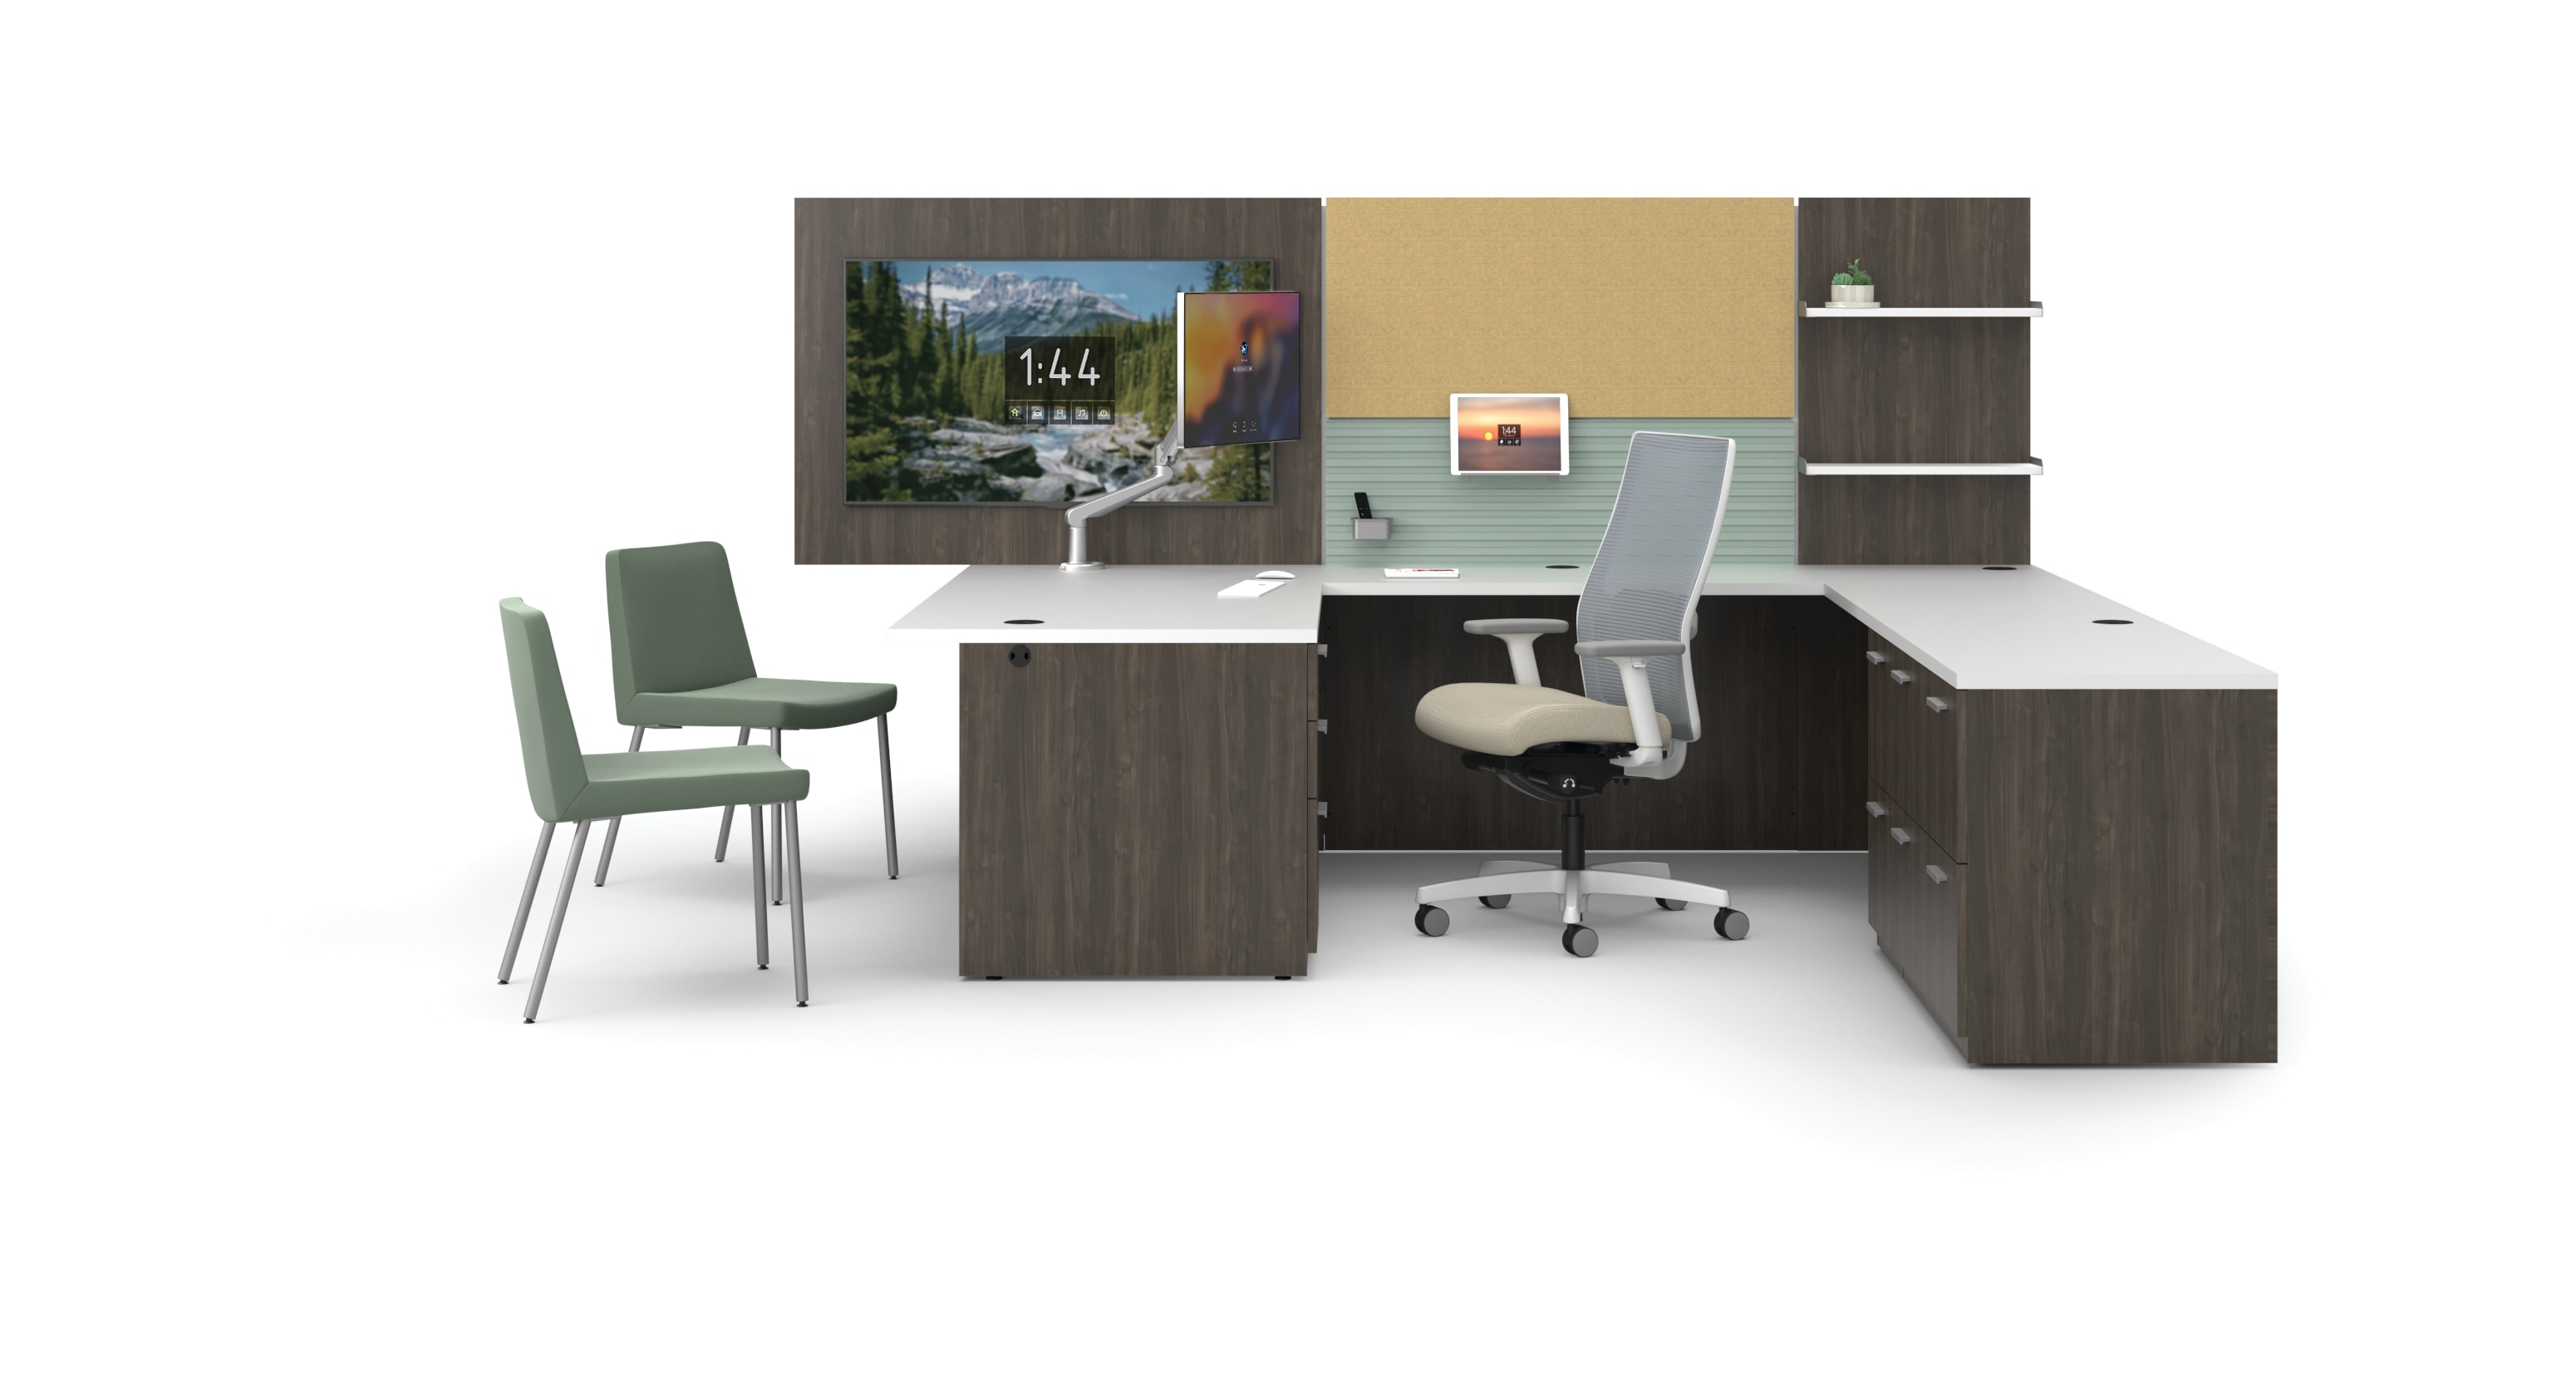 Concinnity private office with Workwall tiles and Ignition and Flock seating